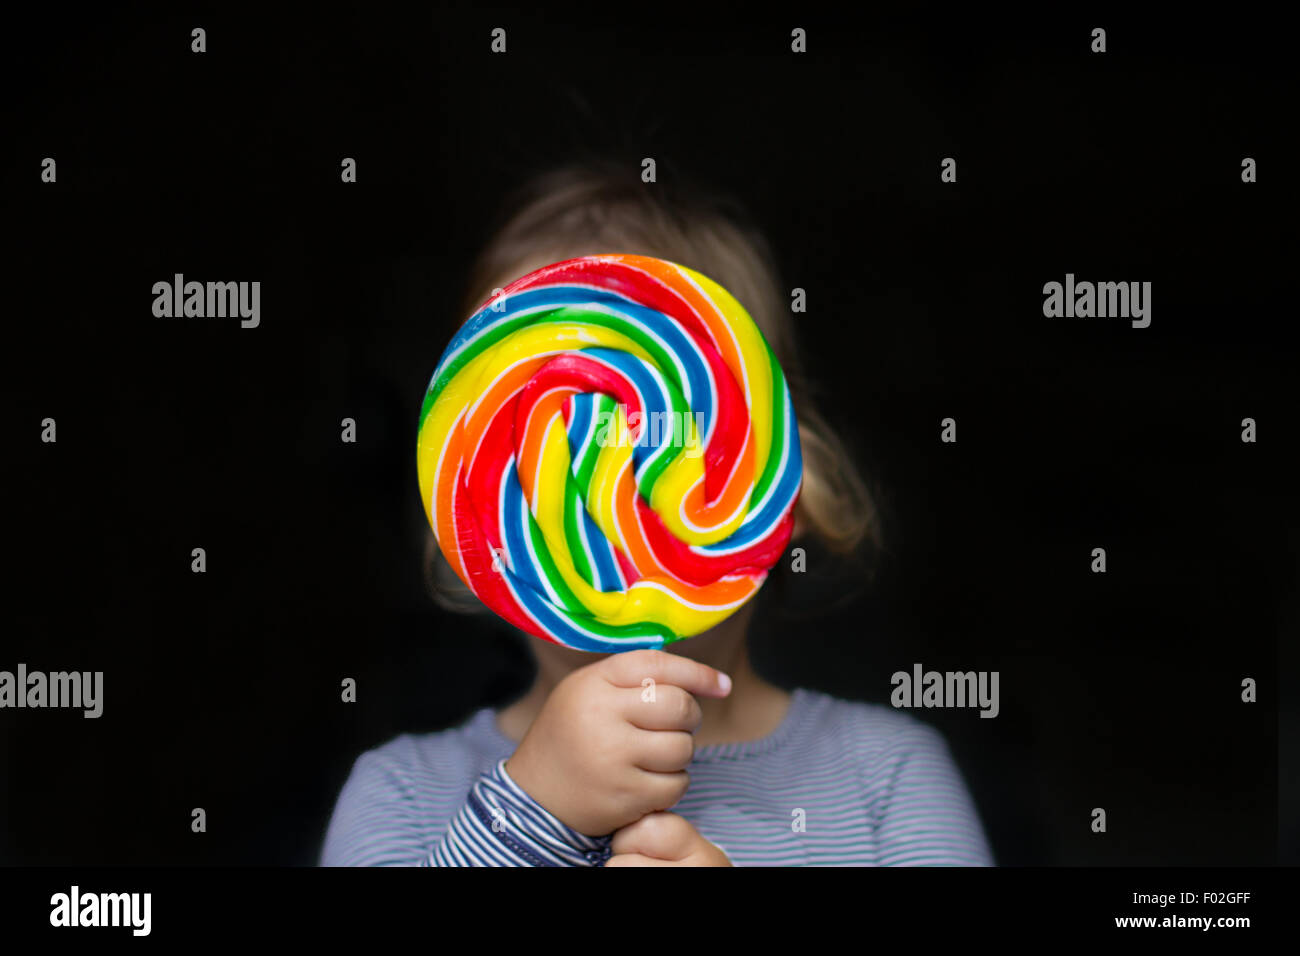 Portrait of a girl holding a multi-colored lollipop Stock Photo